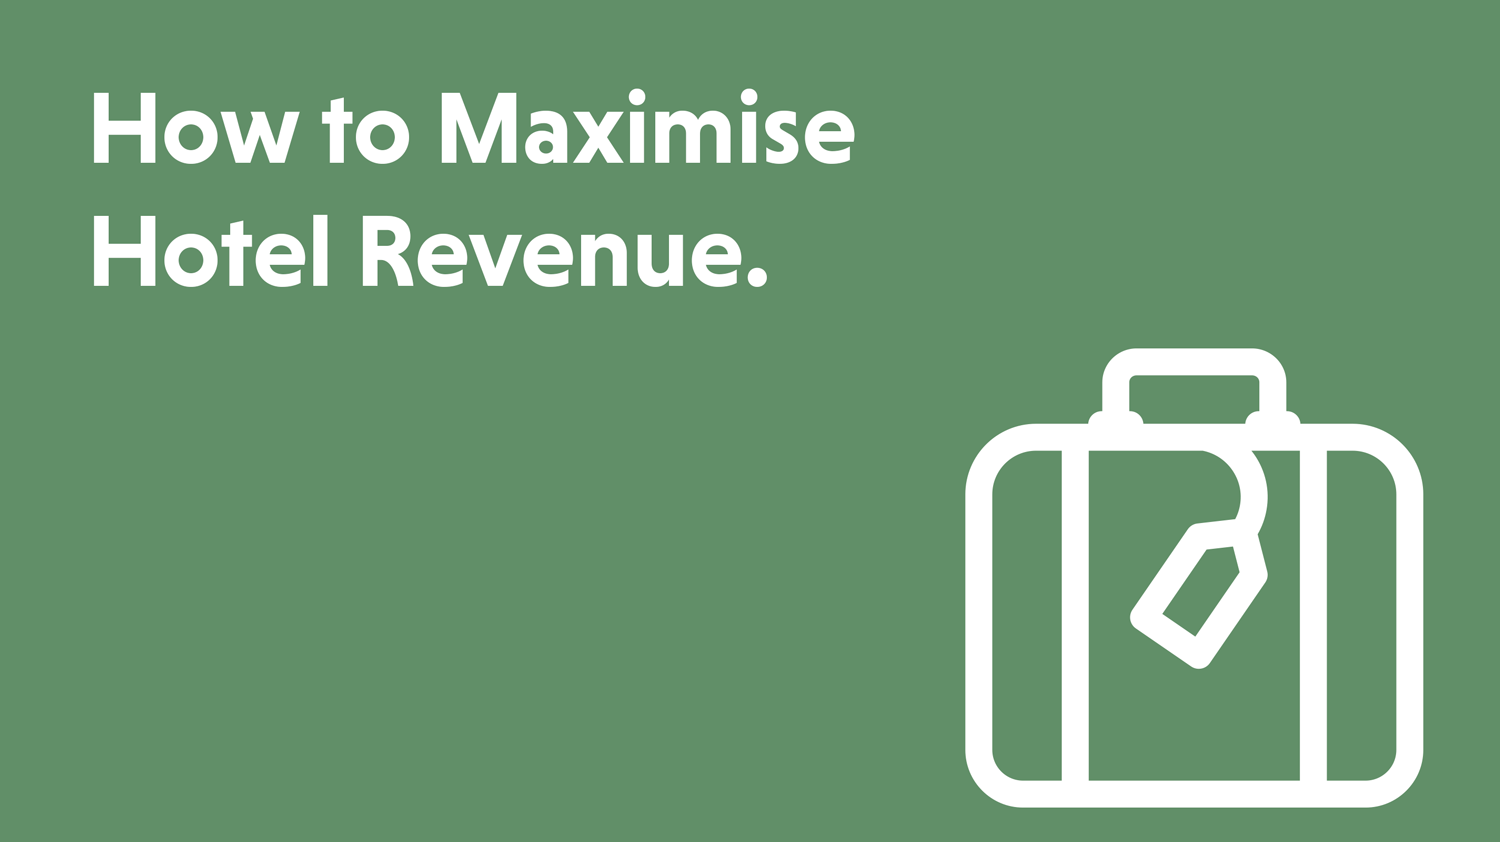 Blog cover artwork showing the title How to Maximise Hotel Revenue